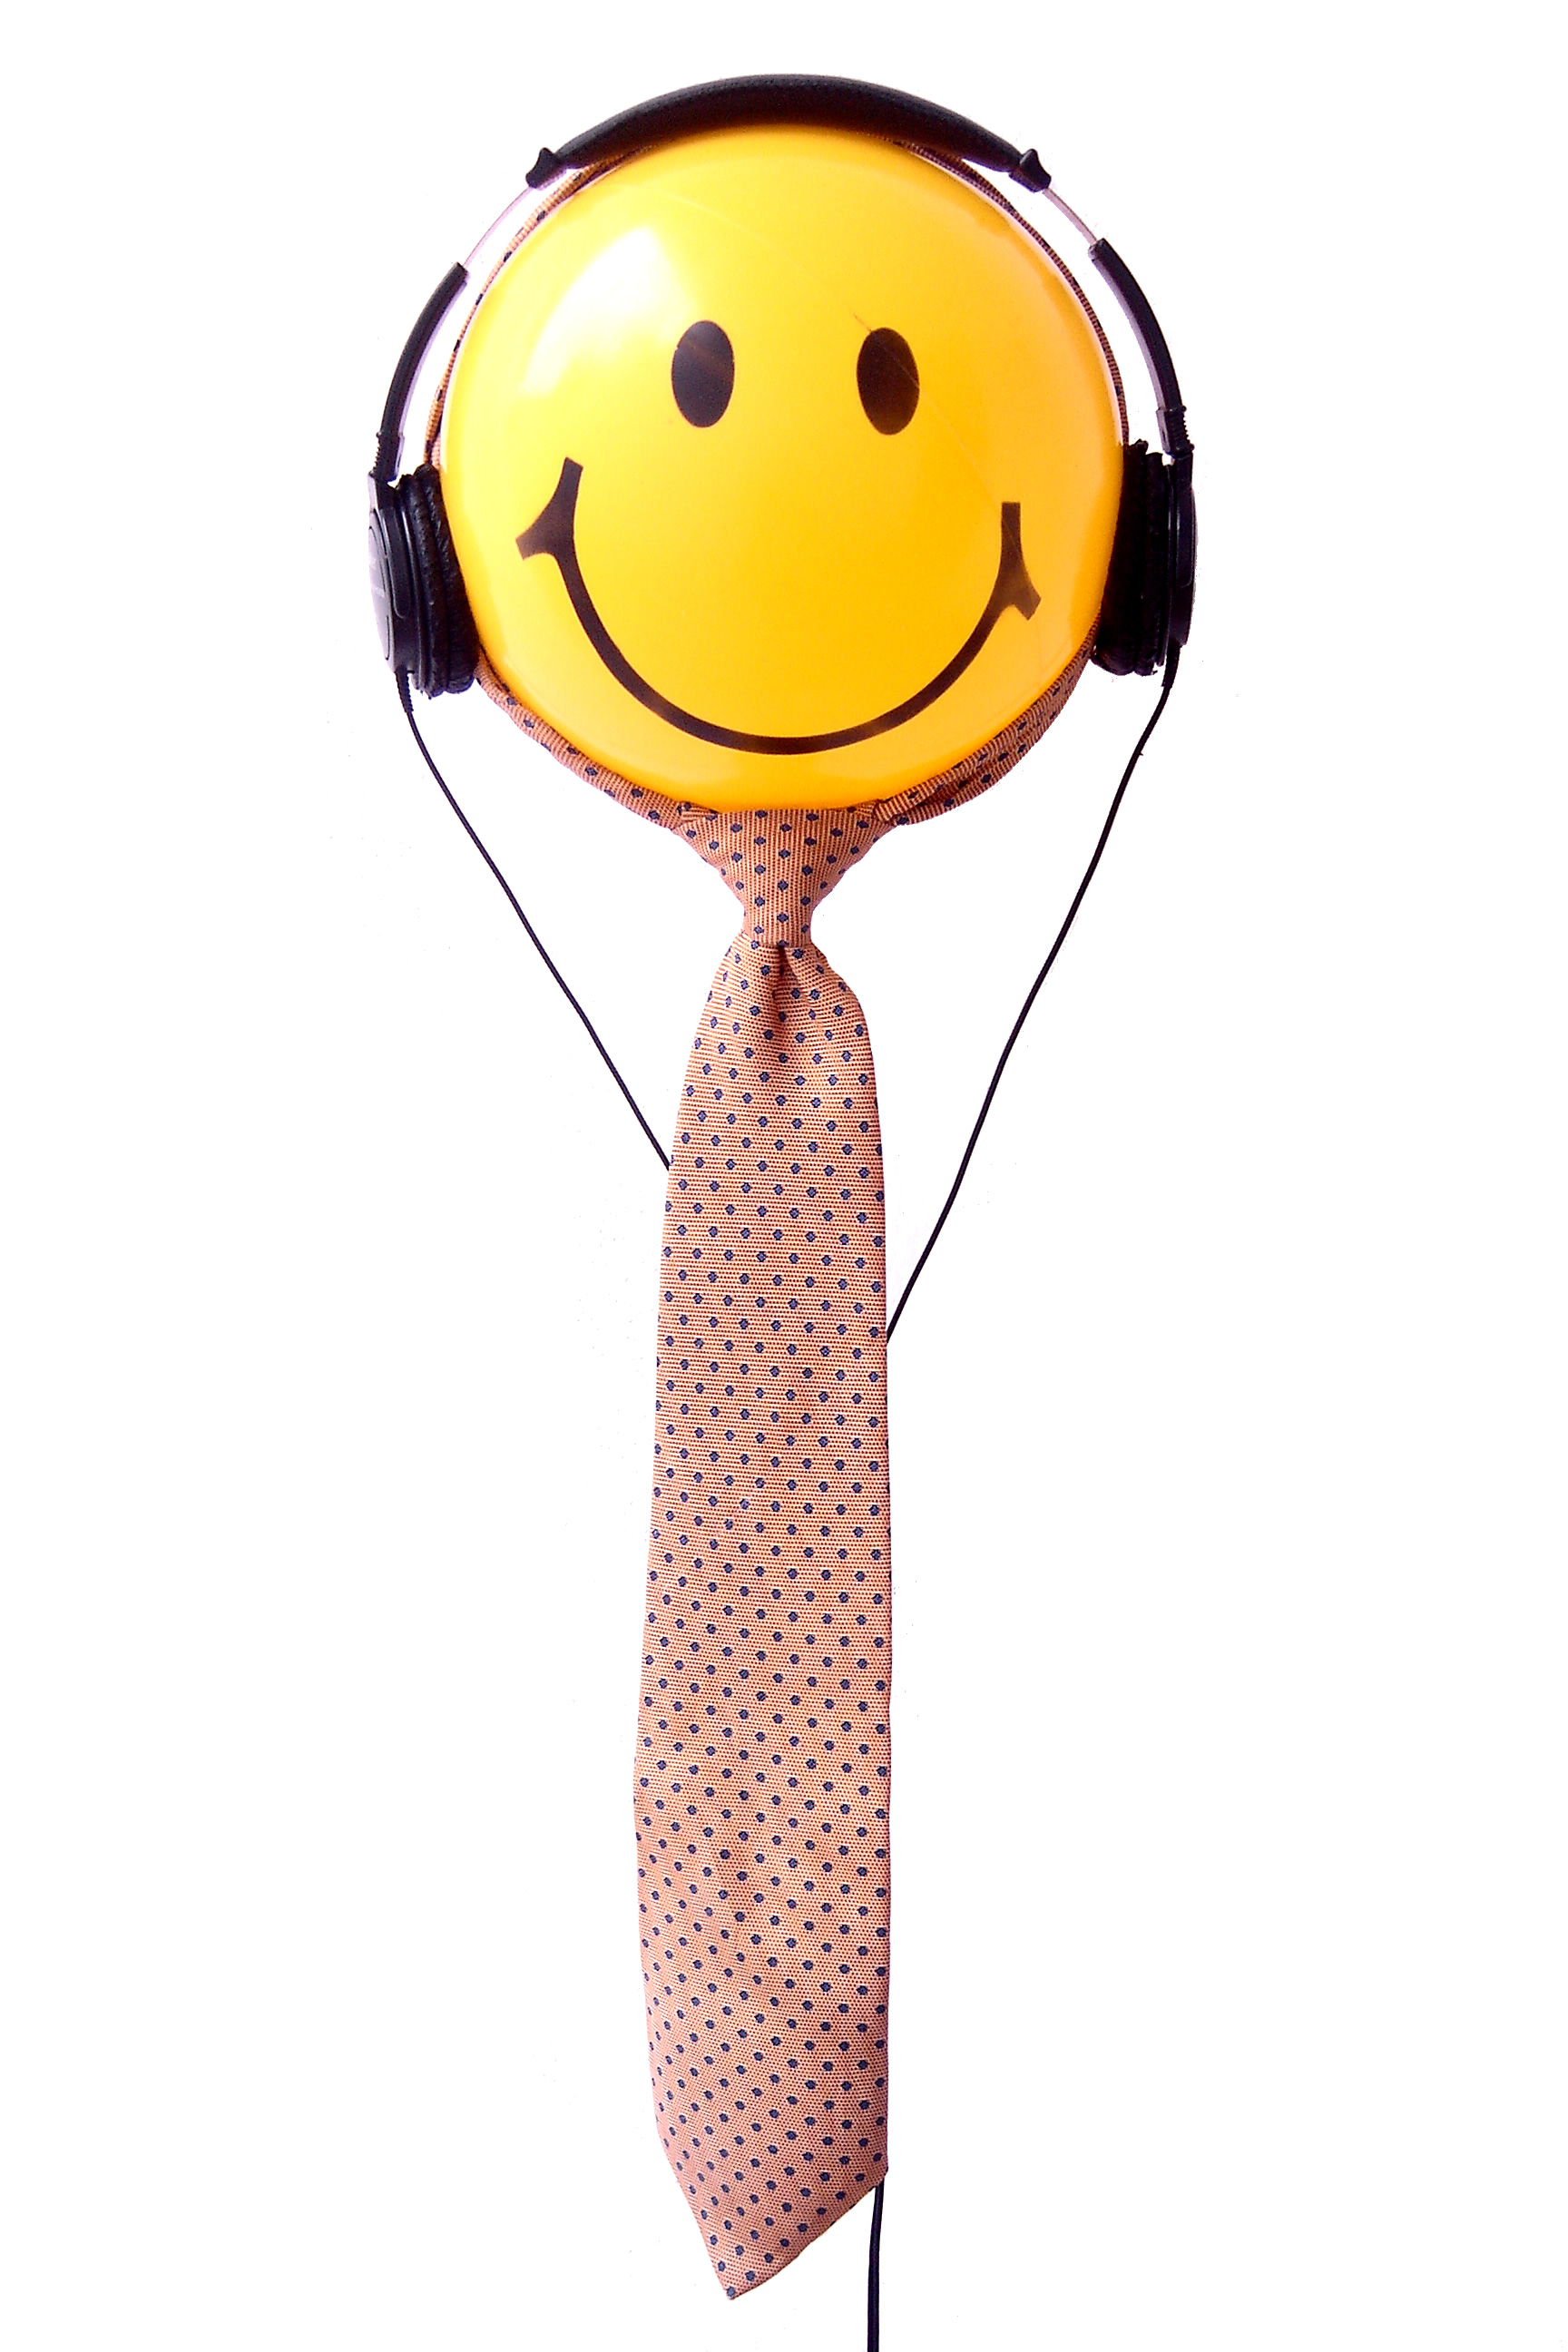 Smiley-face wearing headphones and a tie